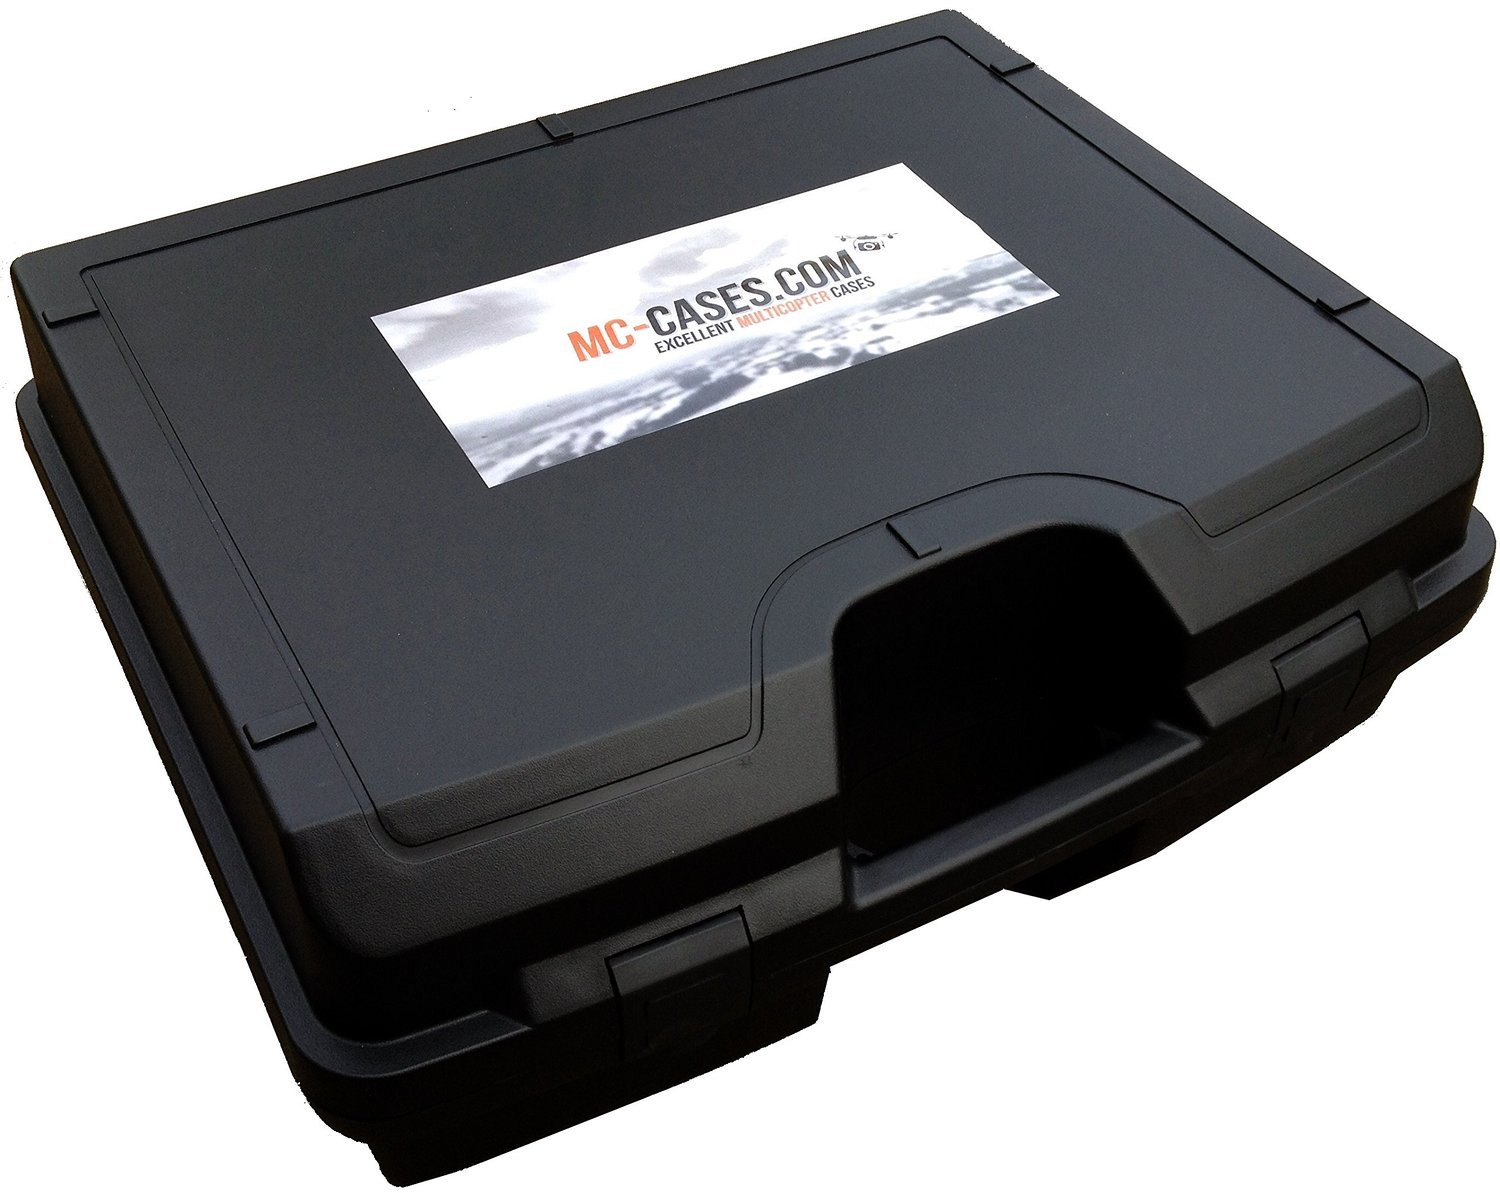 Yuneec Q500 Carry Case - By Mc-cases - Excellent Multicopter Cases